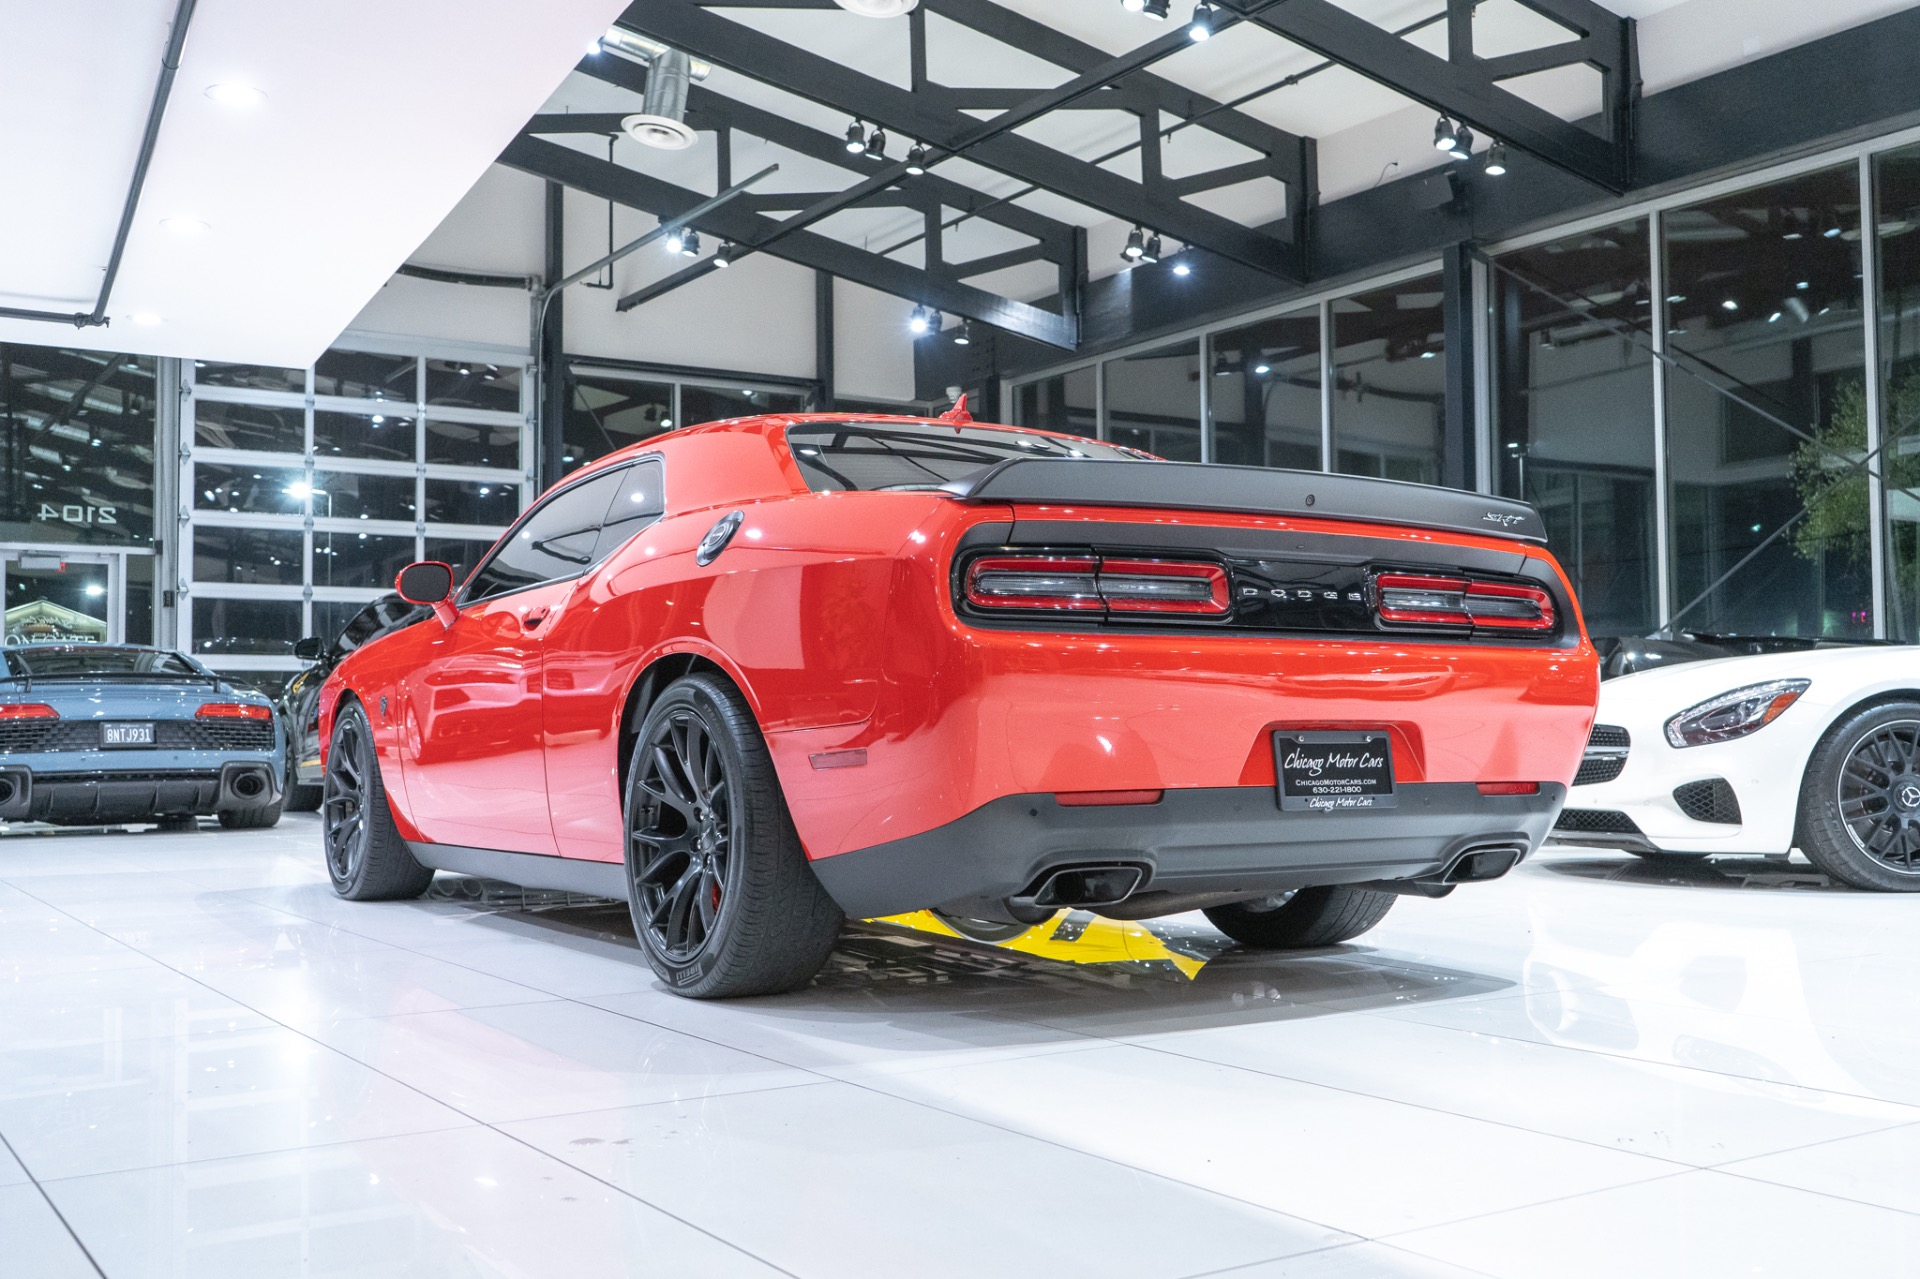 Used-2016-Dodge-Challenger-SRT-Hellcat-Coupe-8-Speed-Auto-Power-Sunroof-Serviced